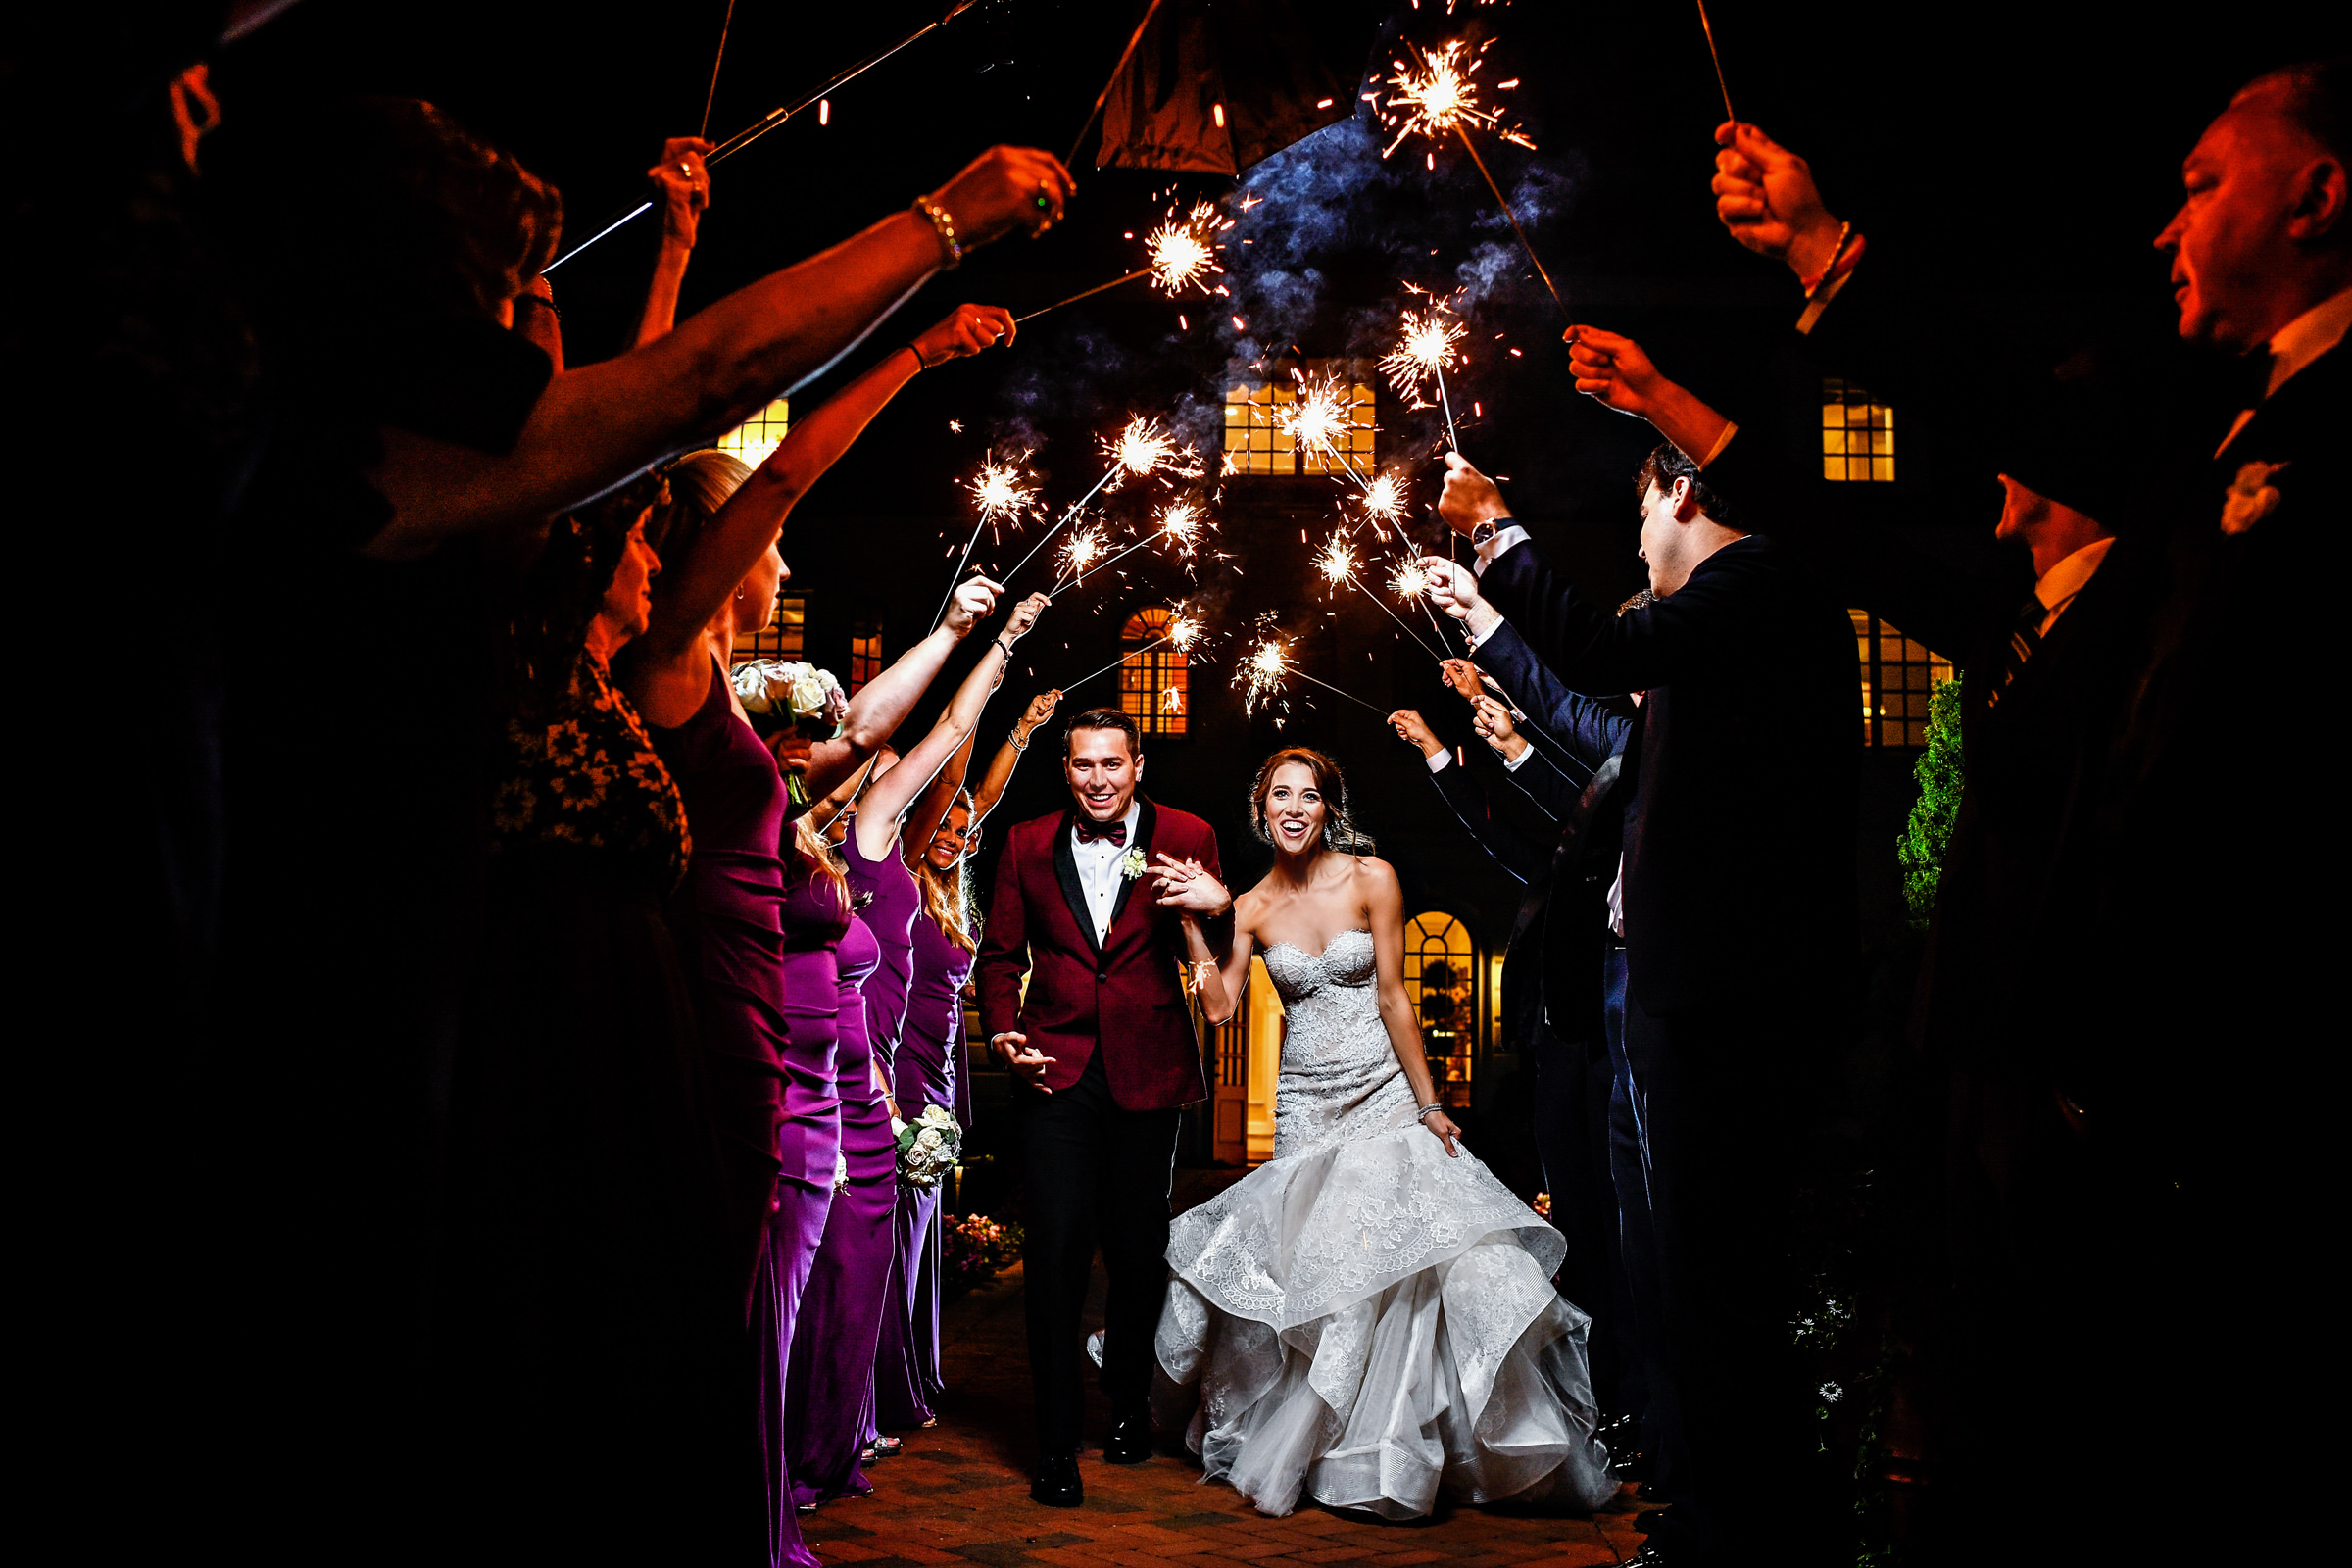 Bride and groom exit under a arch of sparklers - photo by Jeff Tisman Photography, New York